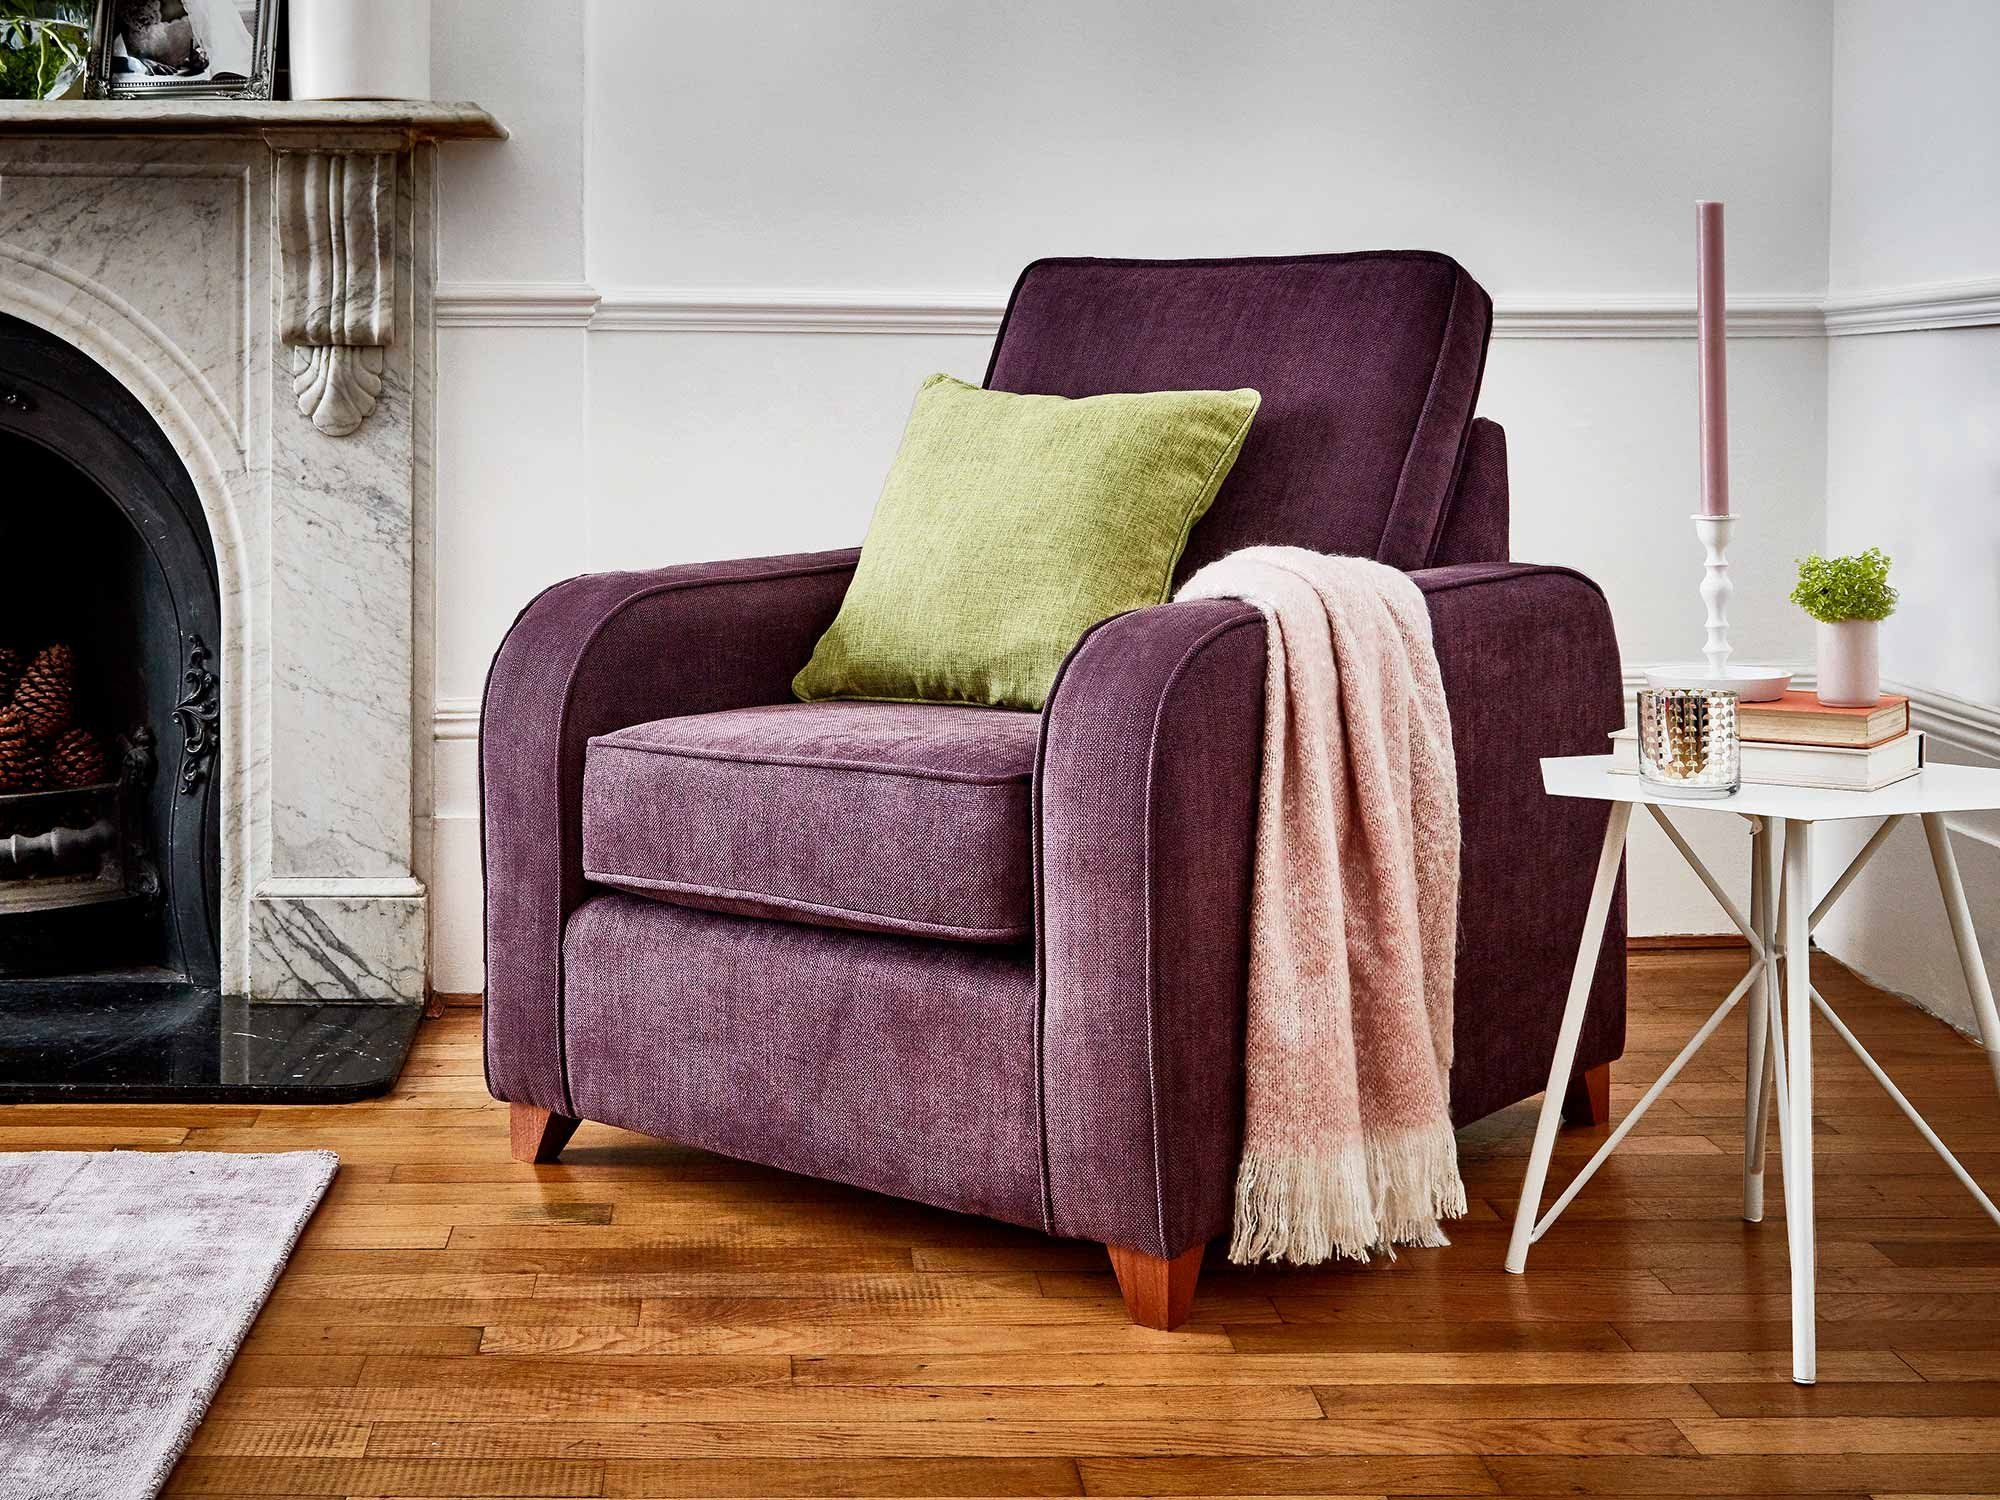 This is how I look in Linen Cotton Aubergine with reflex foam seat cushions